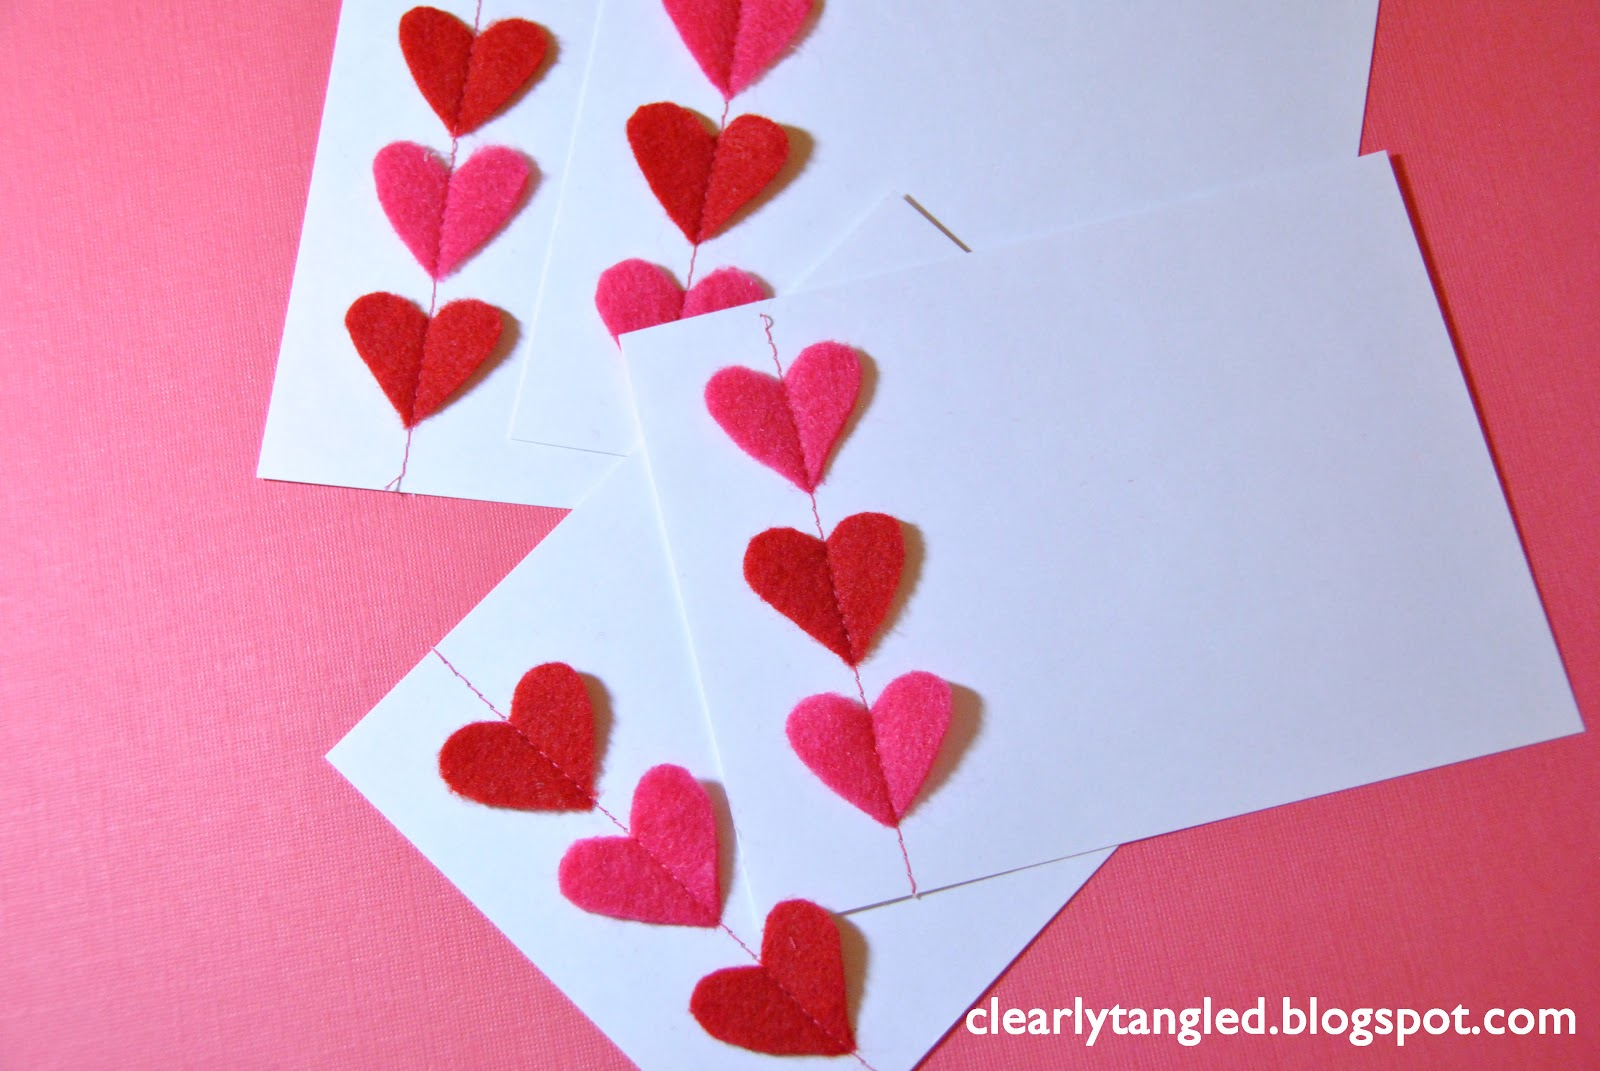 Clearlytangled stitched felt heart valentines cards ways to rid how do you feel about valentines day love it hate it look forward to it every year wish it didnt exist solutioingenieria Images